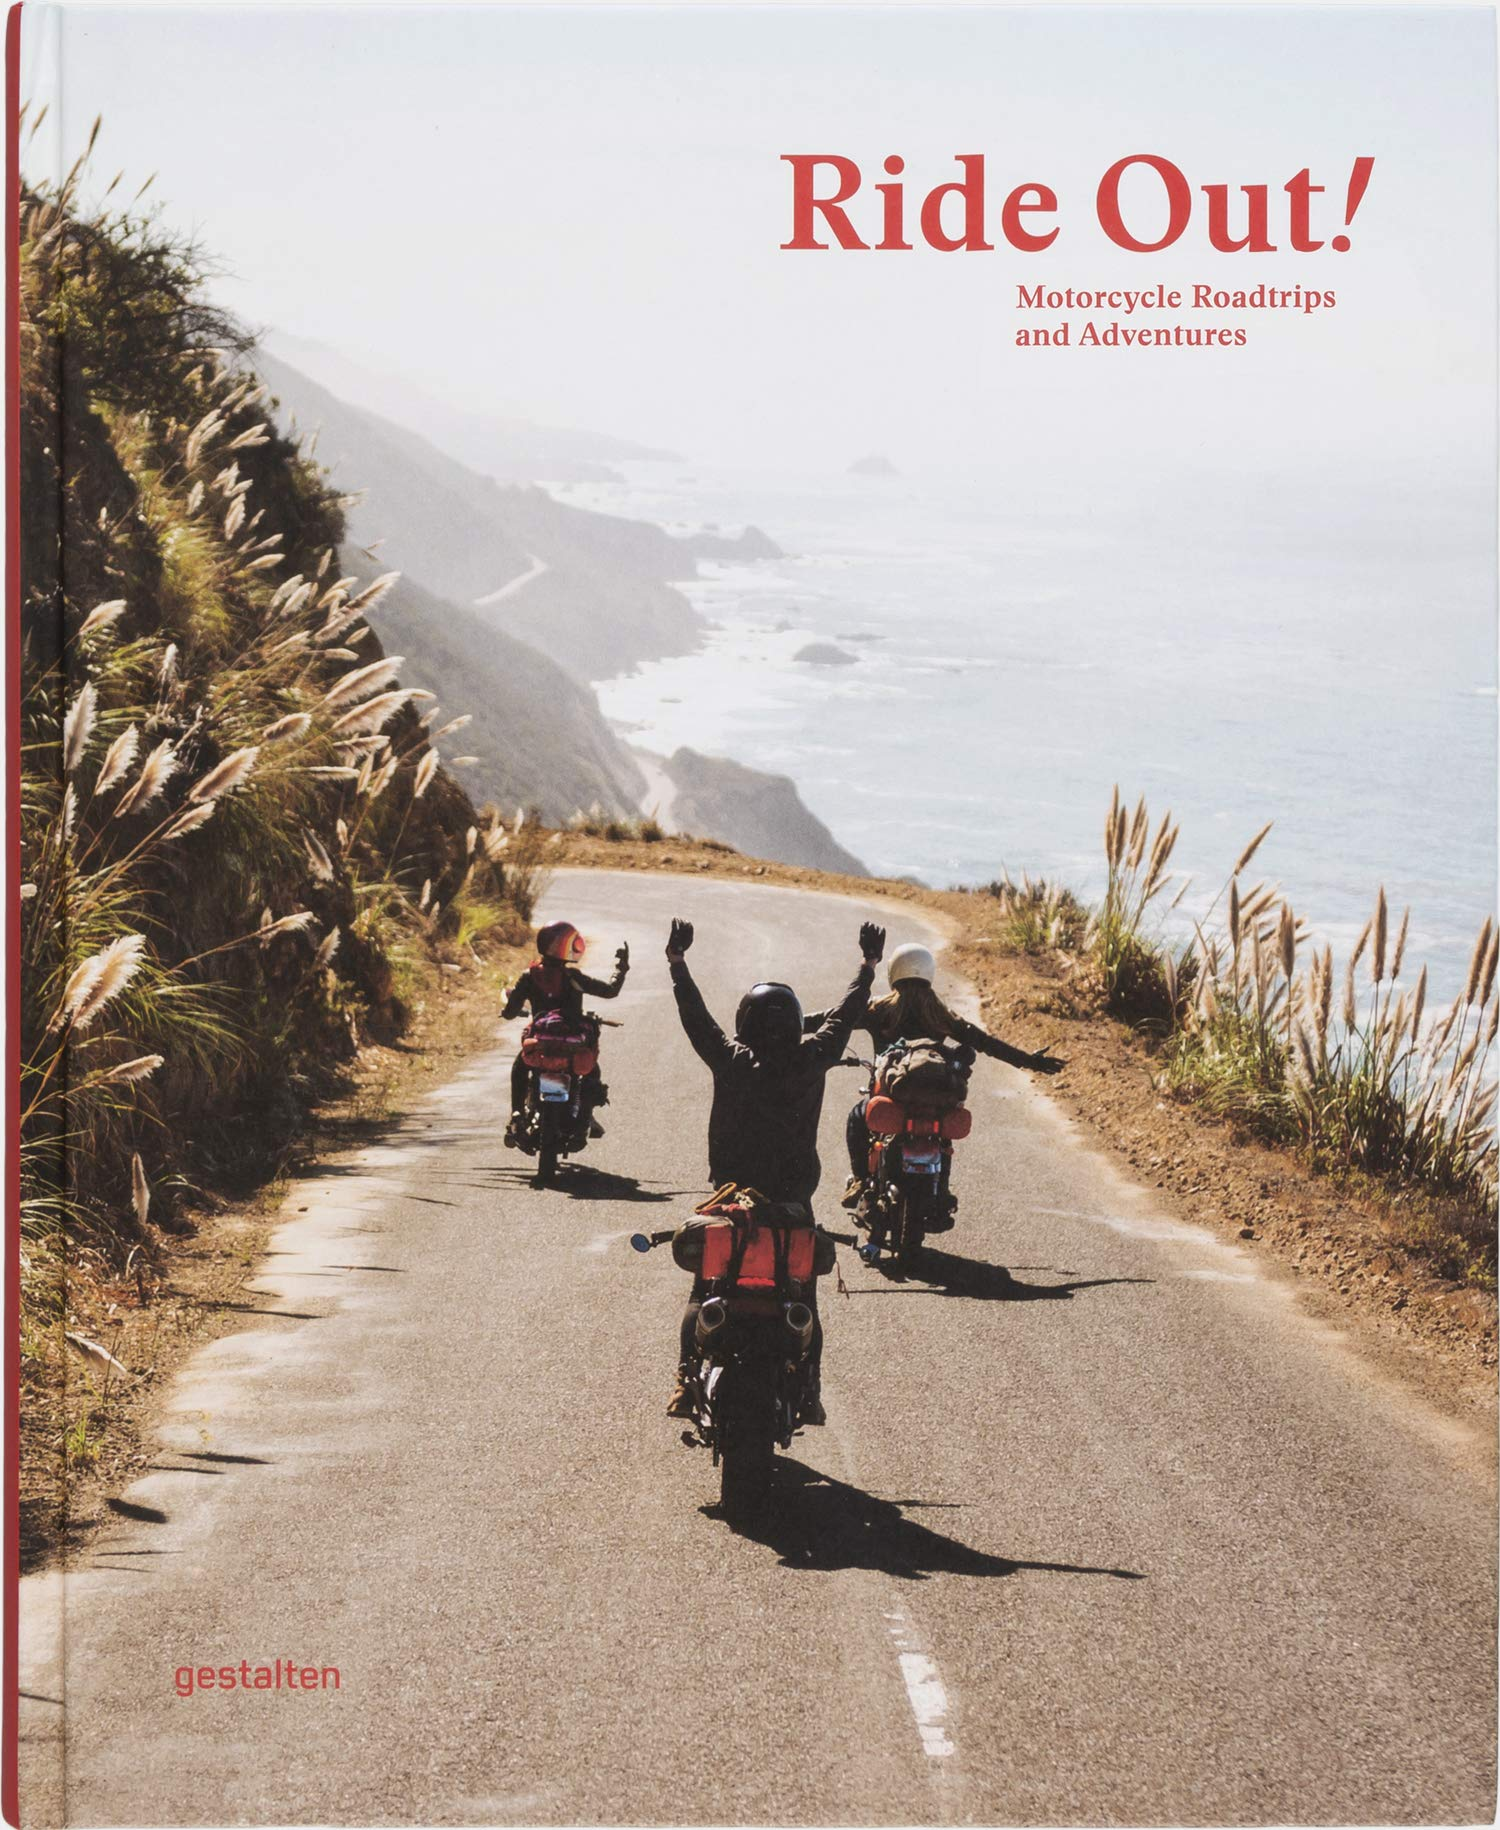 Ride Out!: Motorcycle Road Trips and Adventures by Gestalten